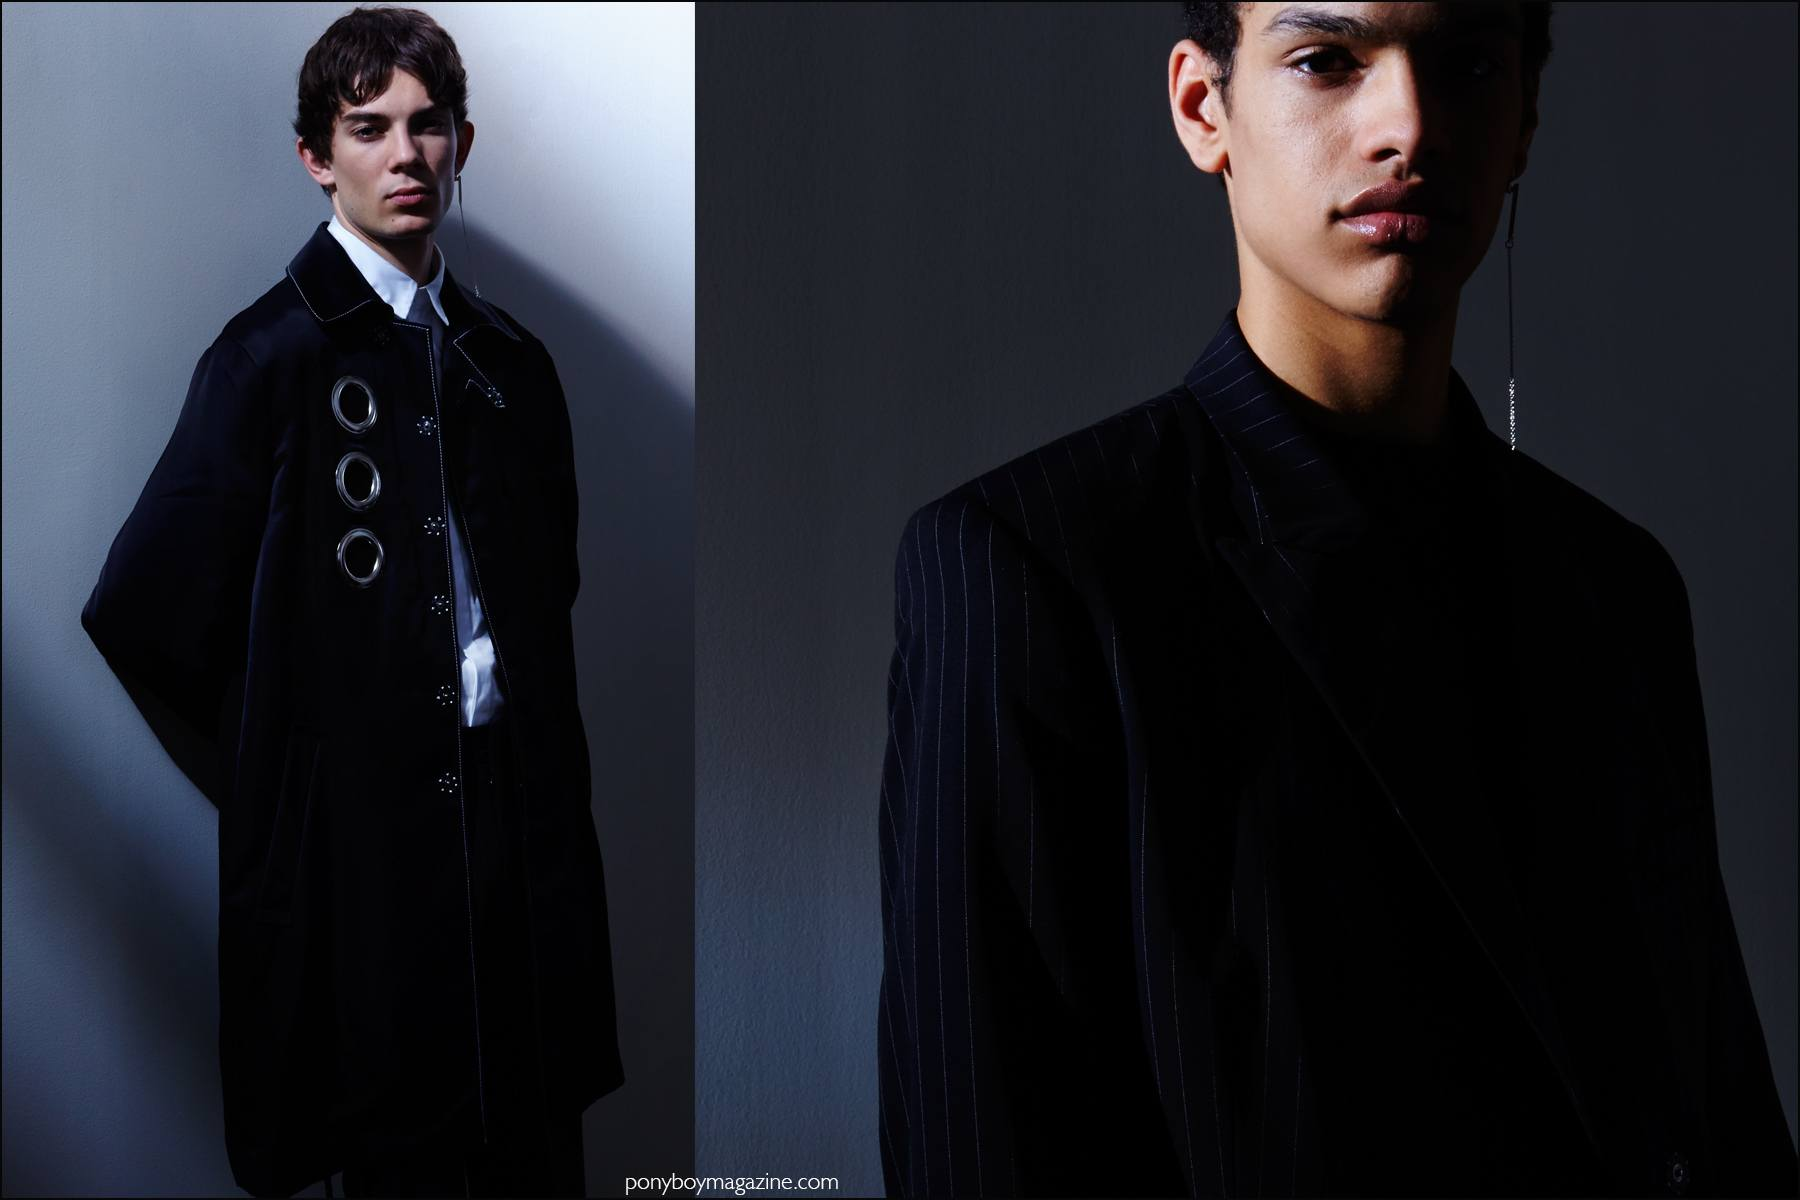 Male models Matthieu Gregoire and Noa Thomas photographed at the Kenneth Ning F/W16 menswear presentation by Alexander Thompson for Ponyboy magazine NY.